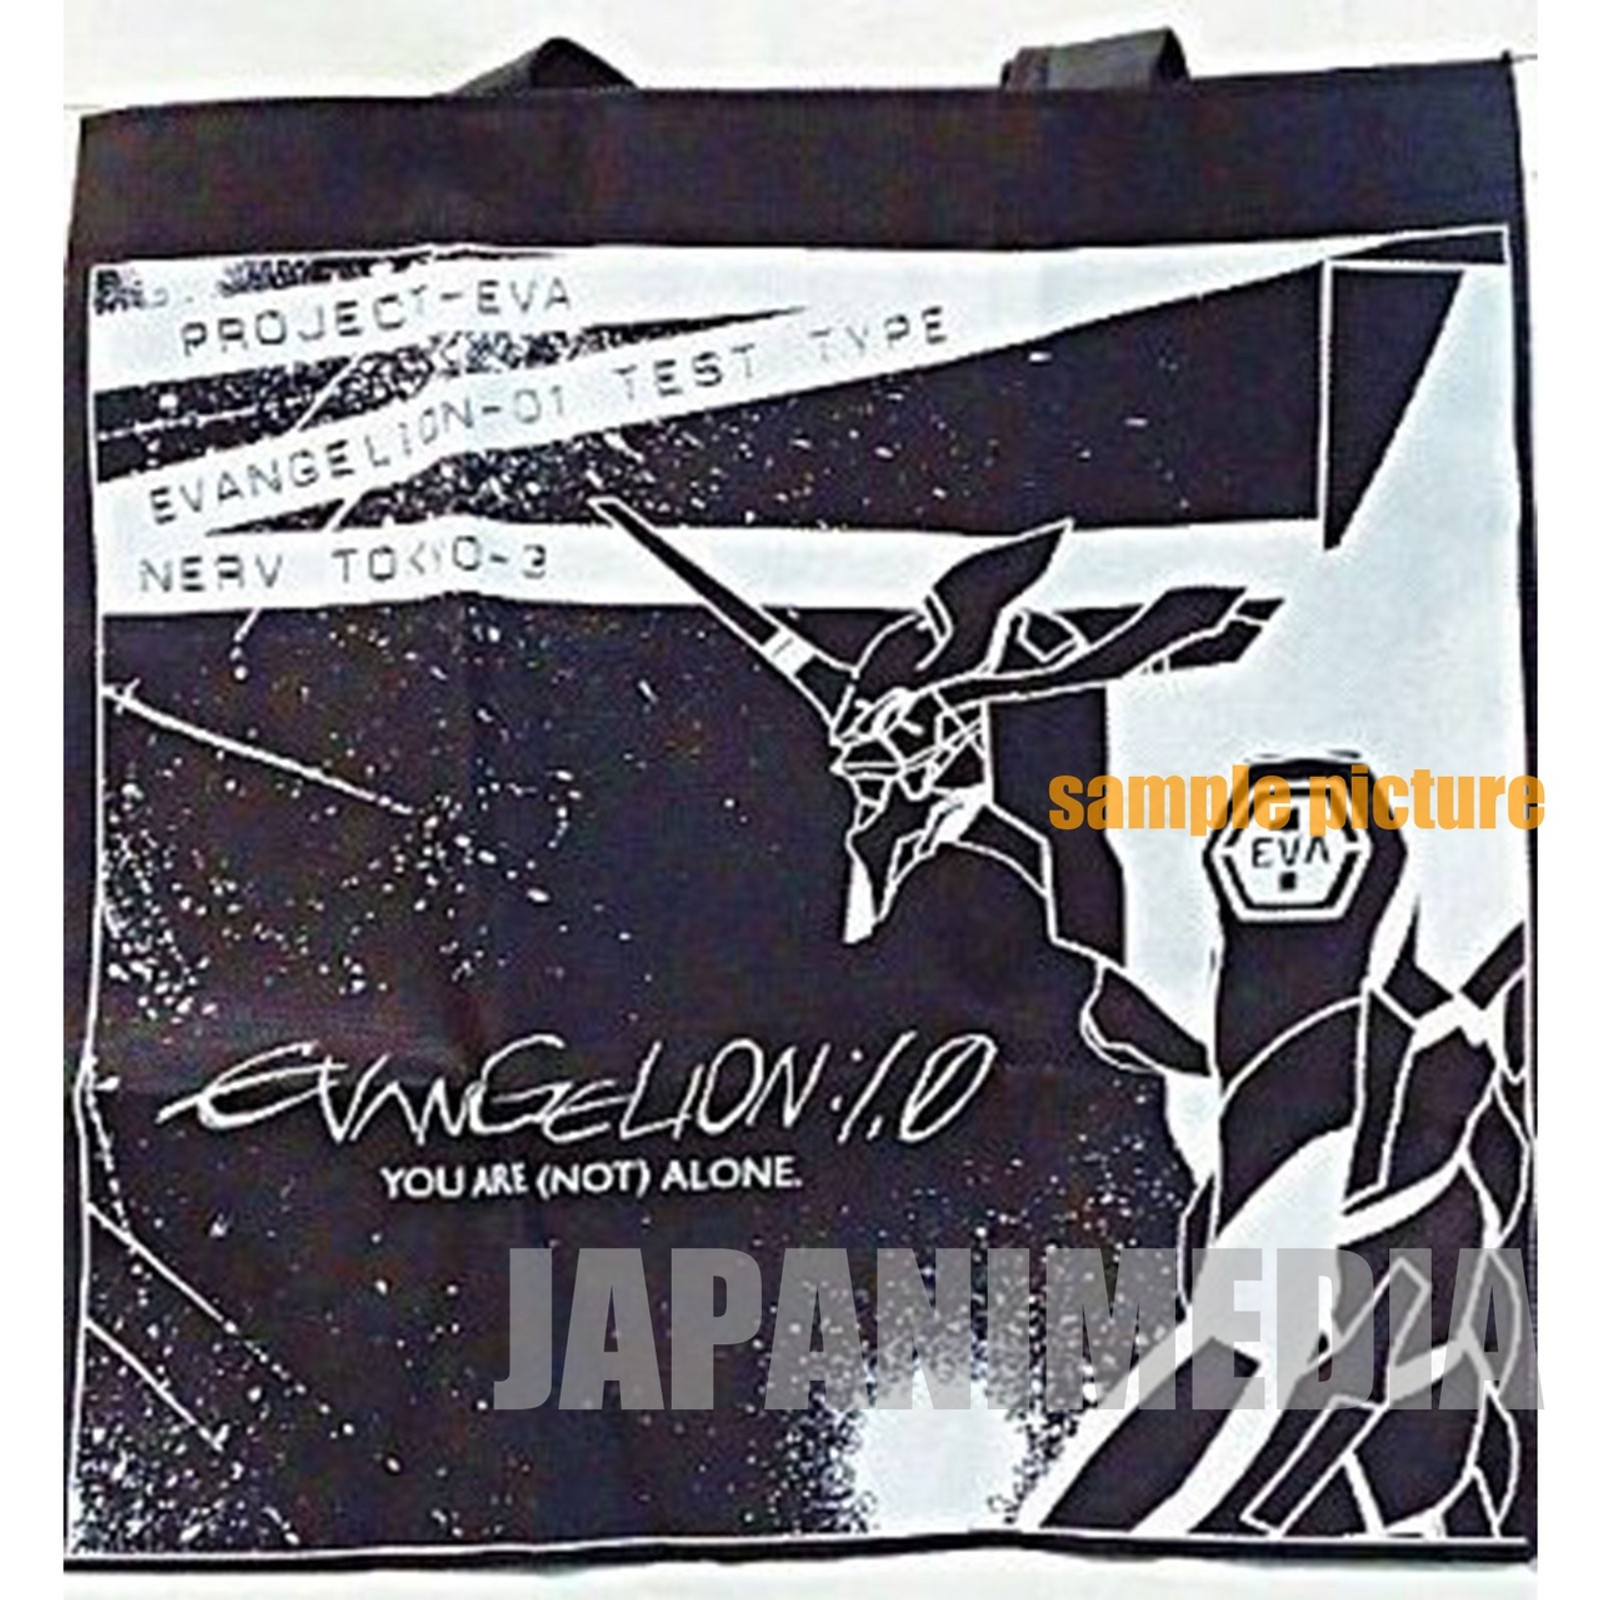 Evangelion x Newtype EVA01 W Name Original Bag JAPAN ANIME MANGA